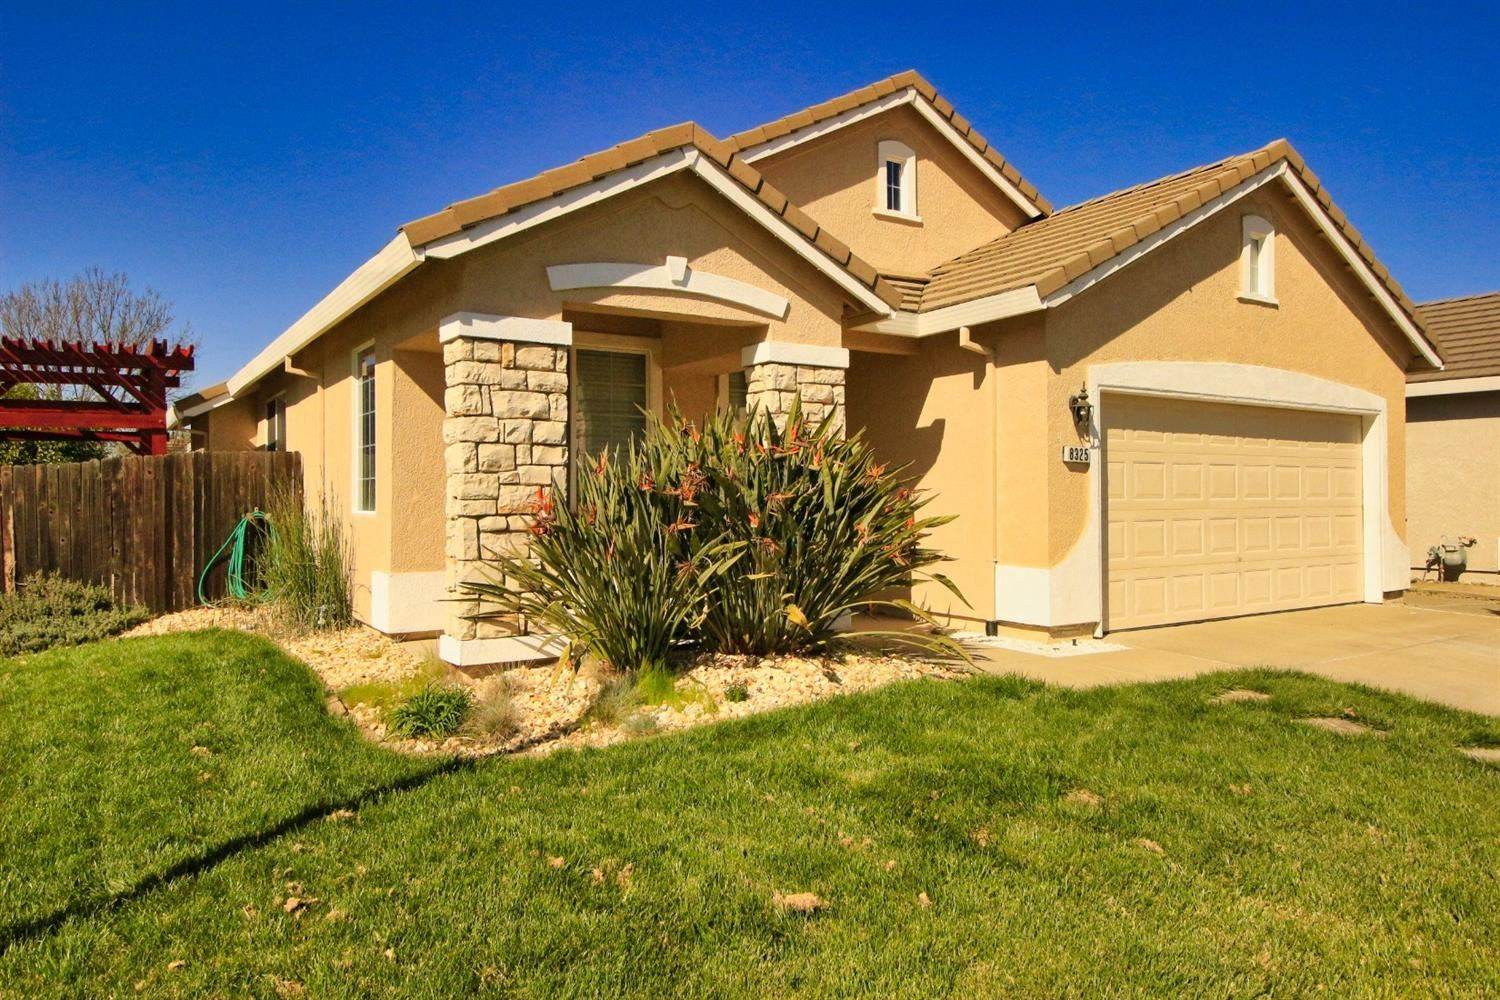 Photo of 8325 Brewster Mill Circle, Antelope, CA 95843 (MLS # 221012198)